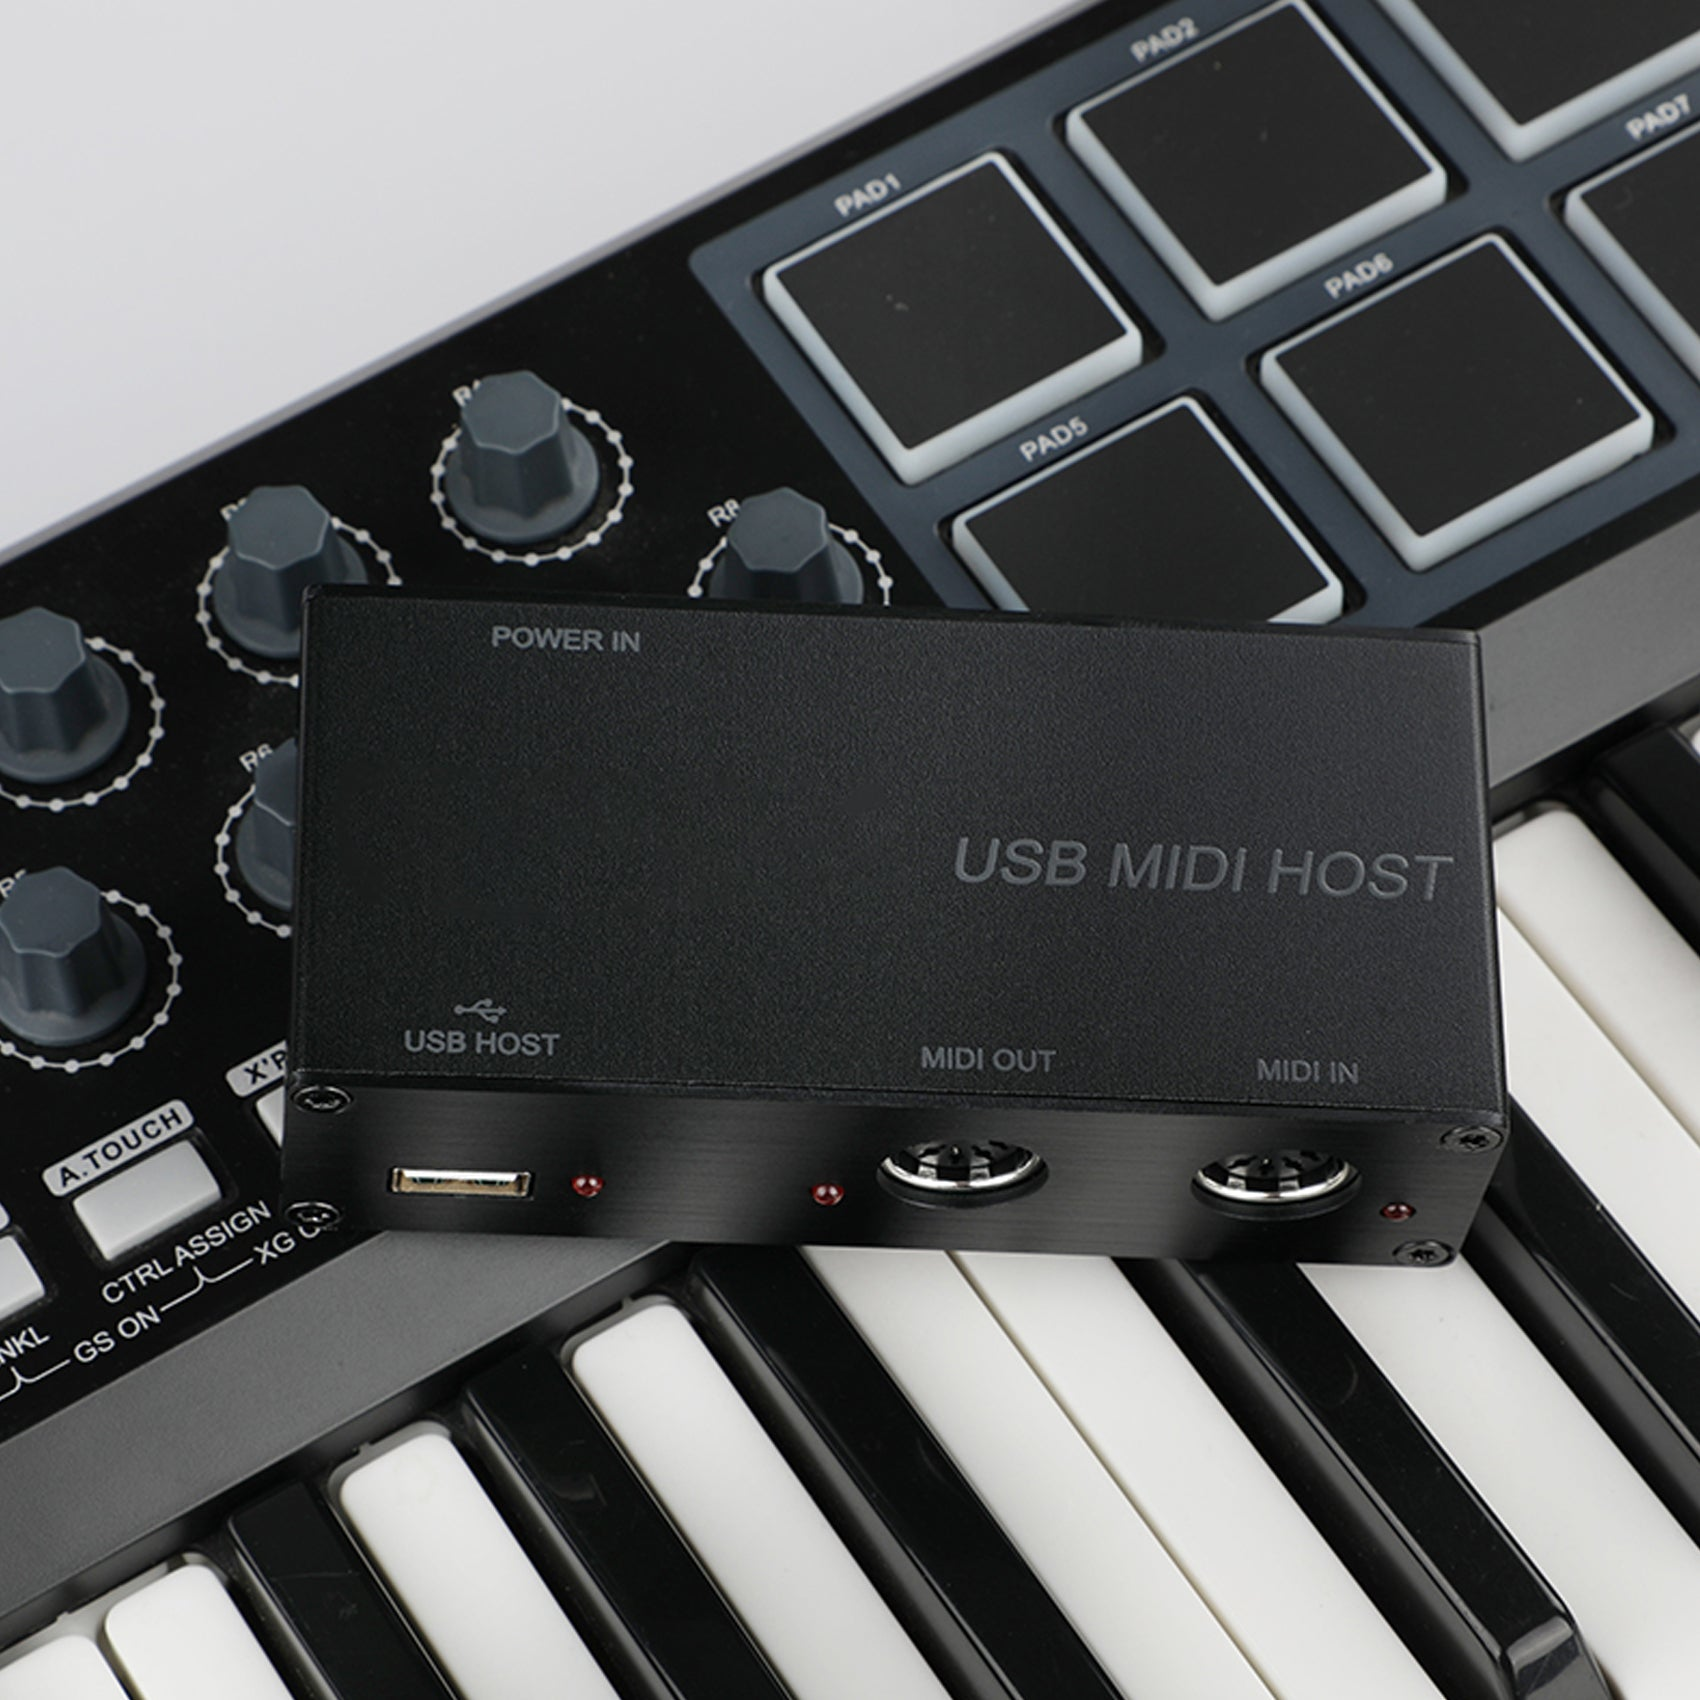 DigitalLife UMH-10 MIDI USB Host (Metal, Black)